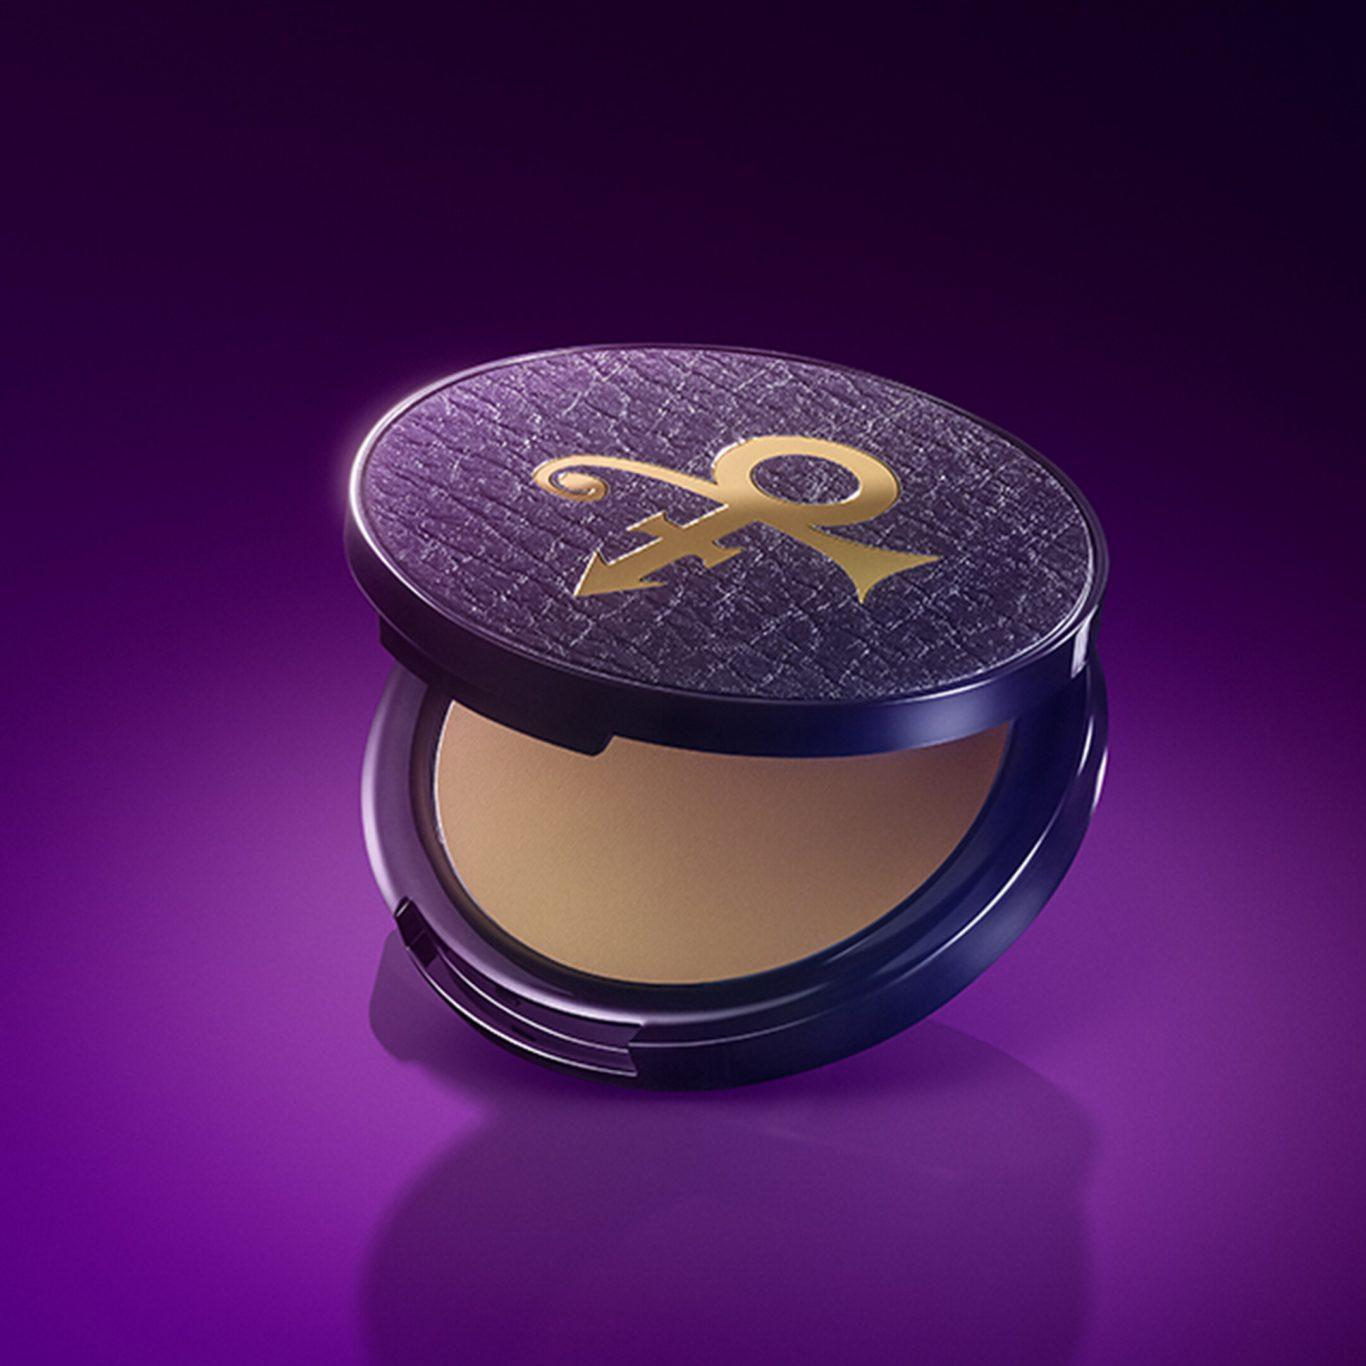 Urban Decay Prince Collection Prince All Nighter Setting Powder Promo